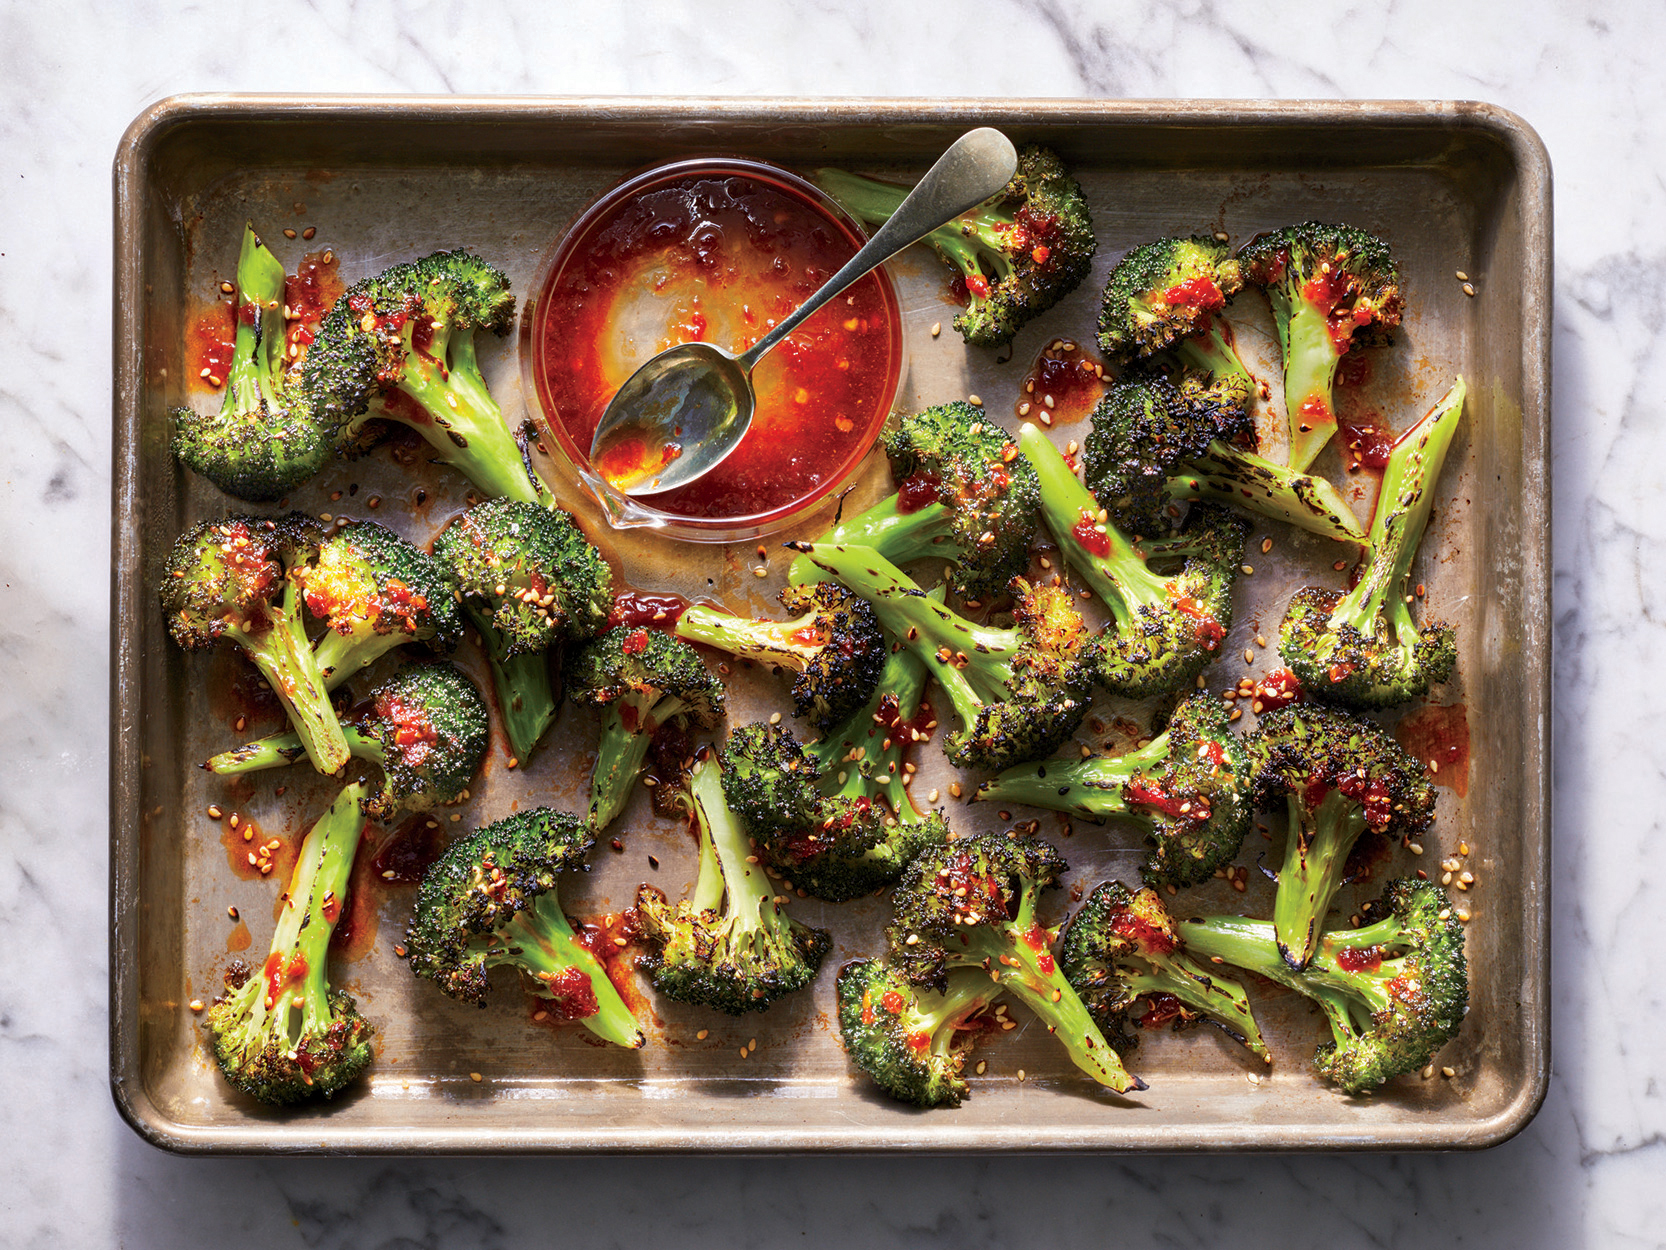 How to Roast Broccoli